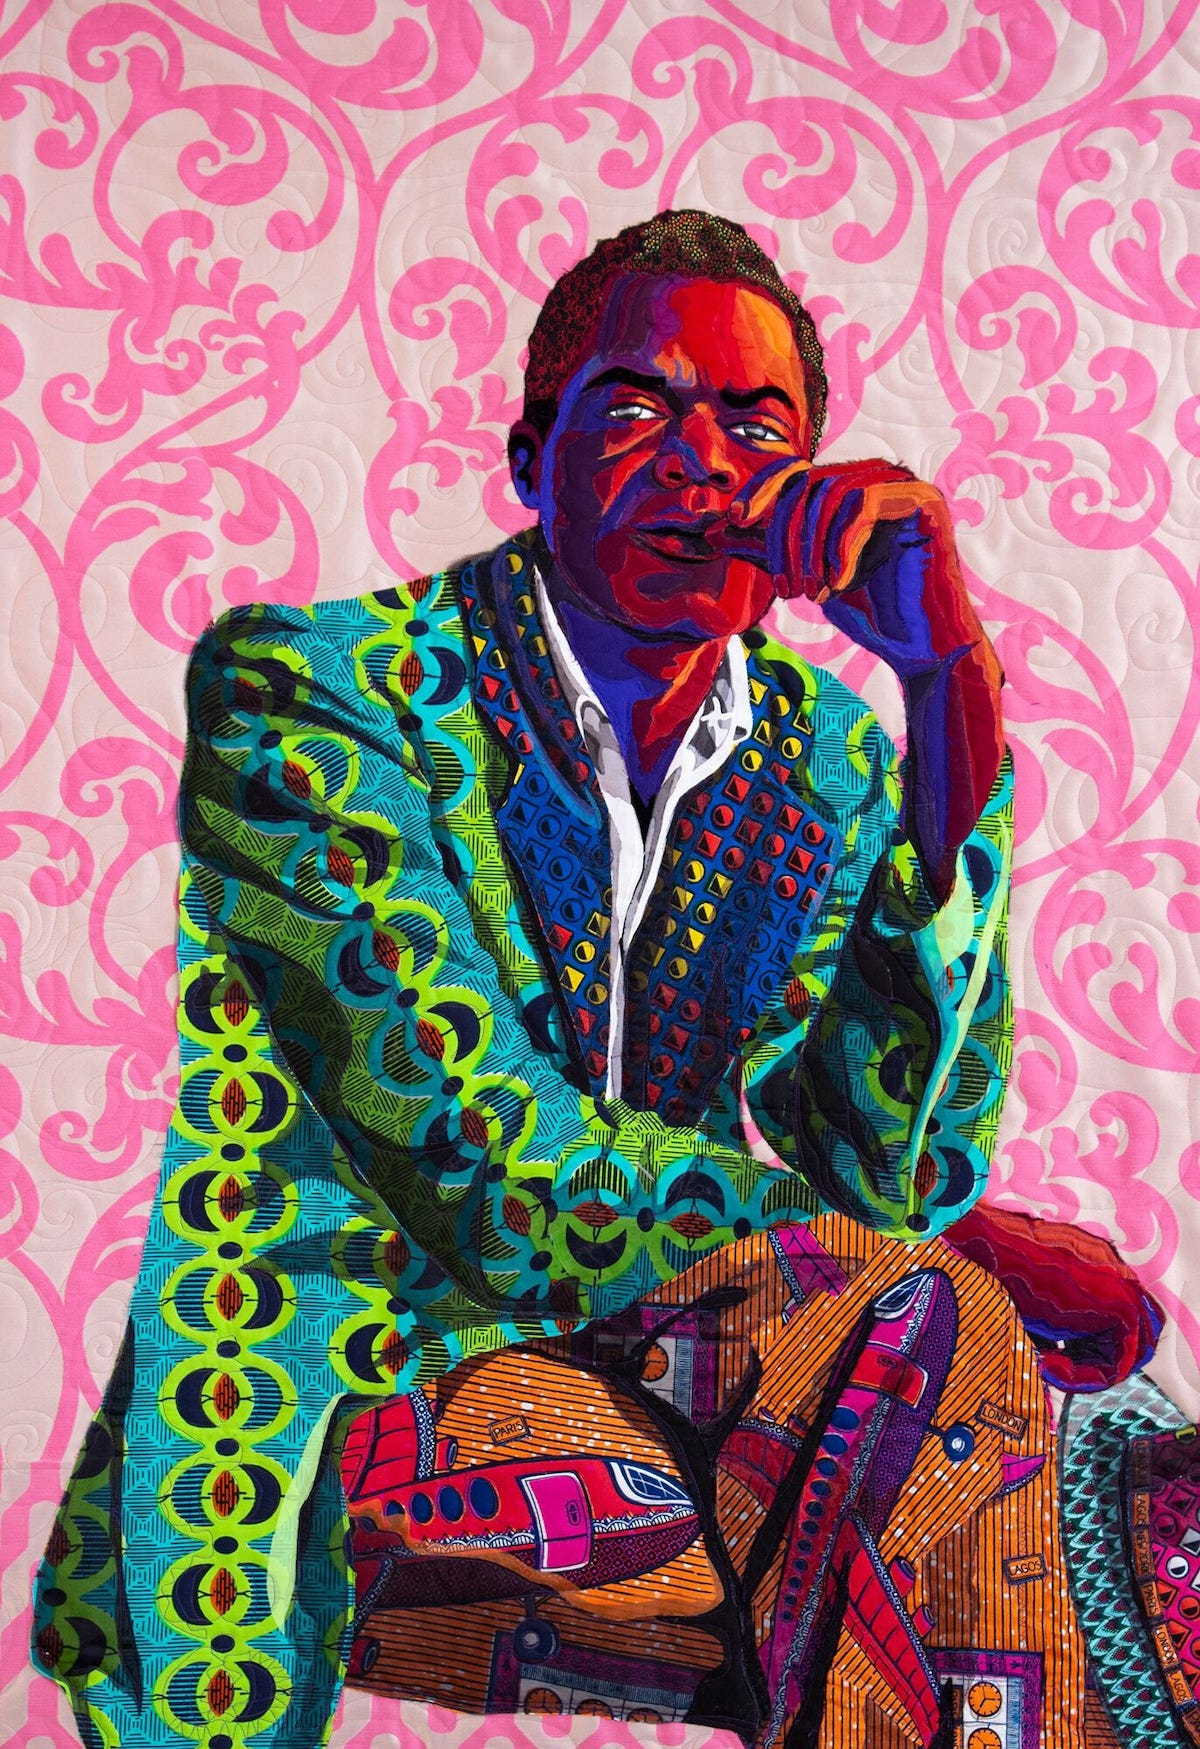 Contemporary Quilting of African American Portraits Carry On the Tradition